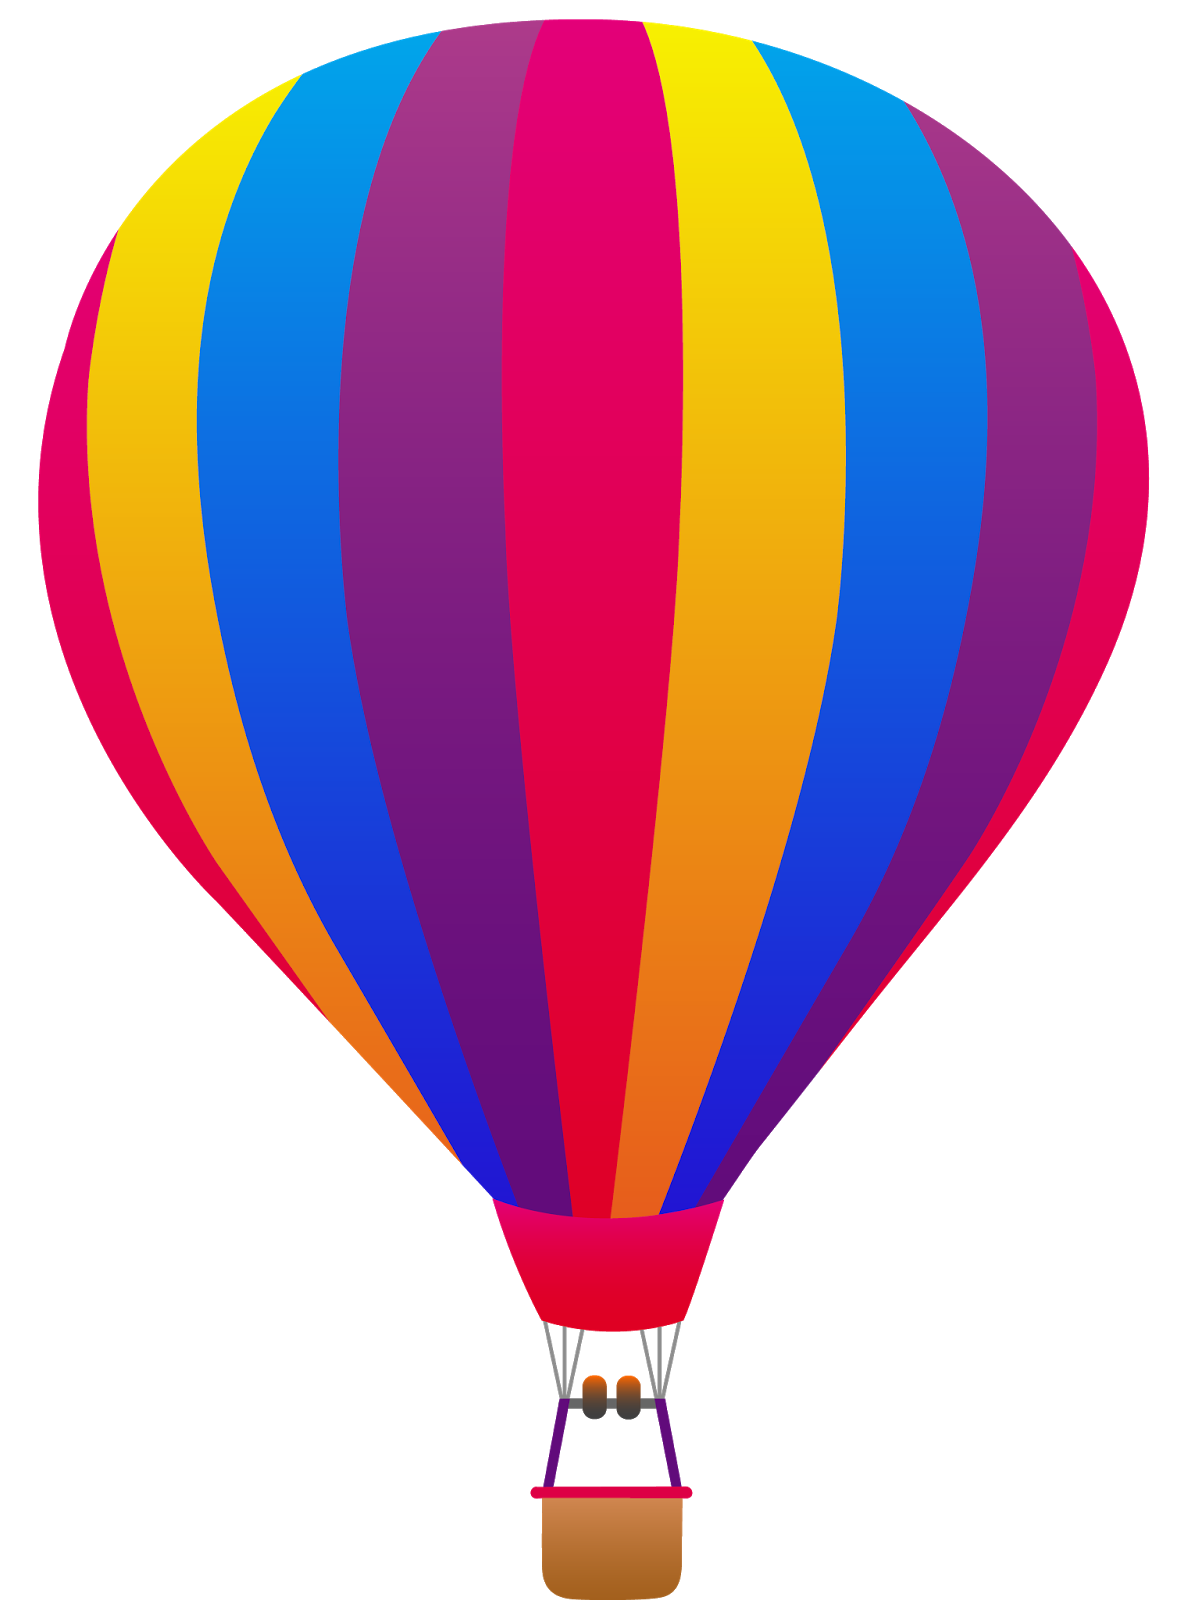 clip art download hot air balloon that I based off of the hot air balloon with these